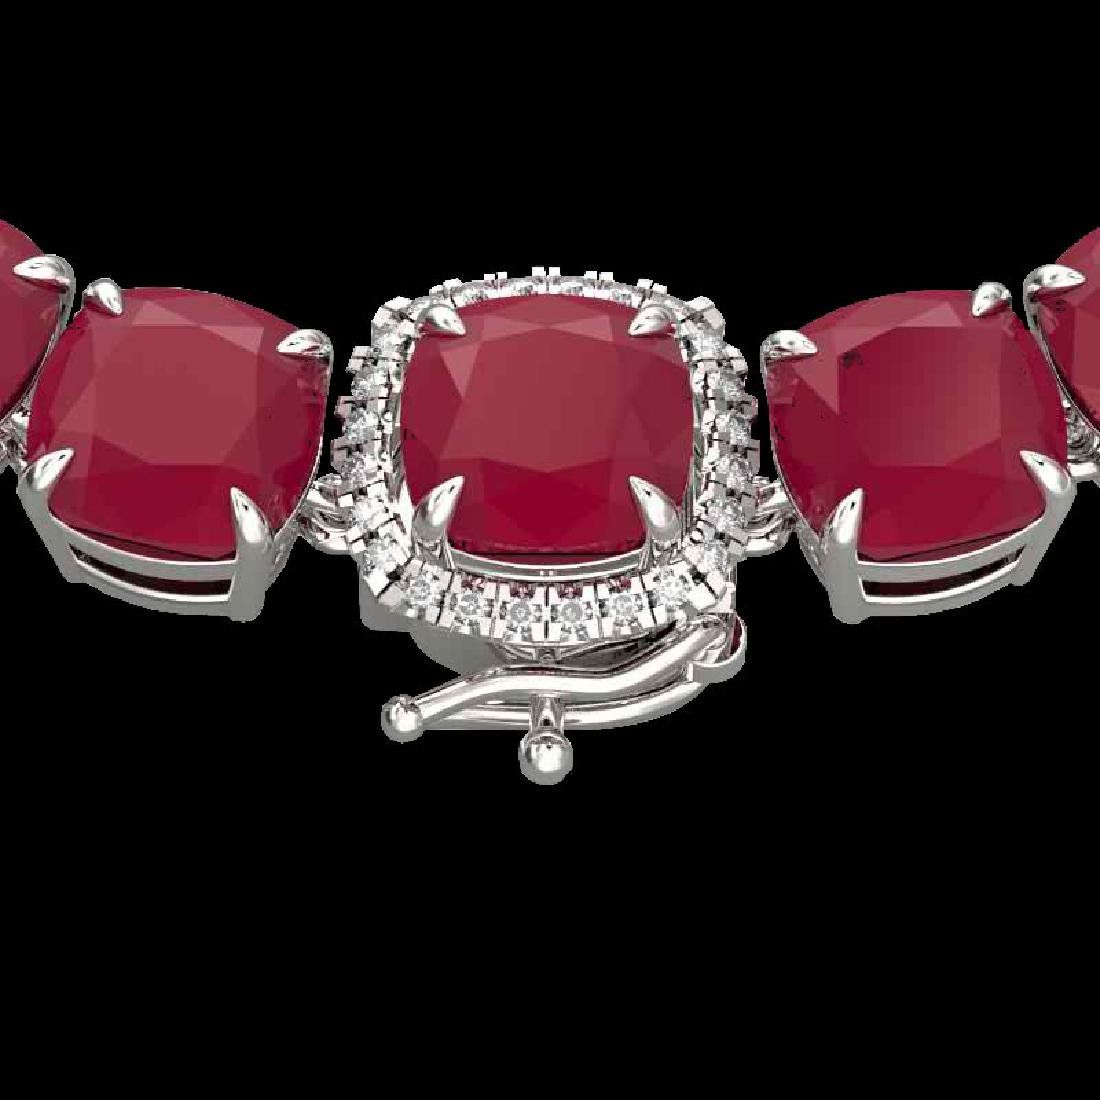 116 CTW Ruby & VS/SI Diamond Halo Micro Eternity